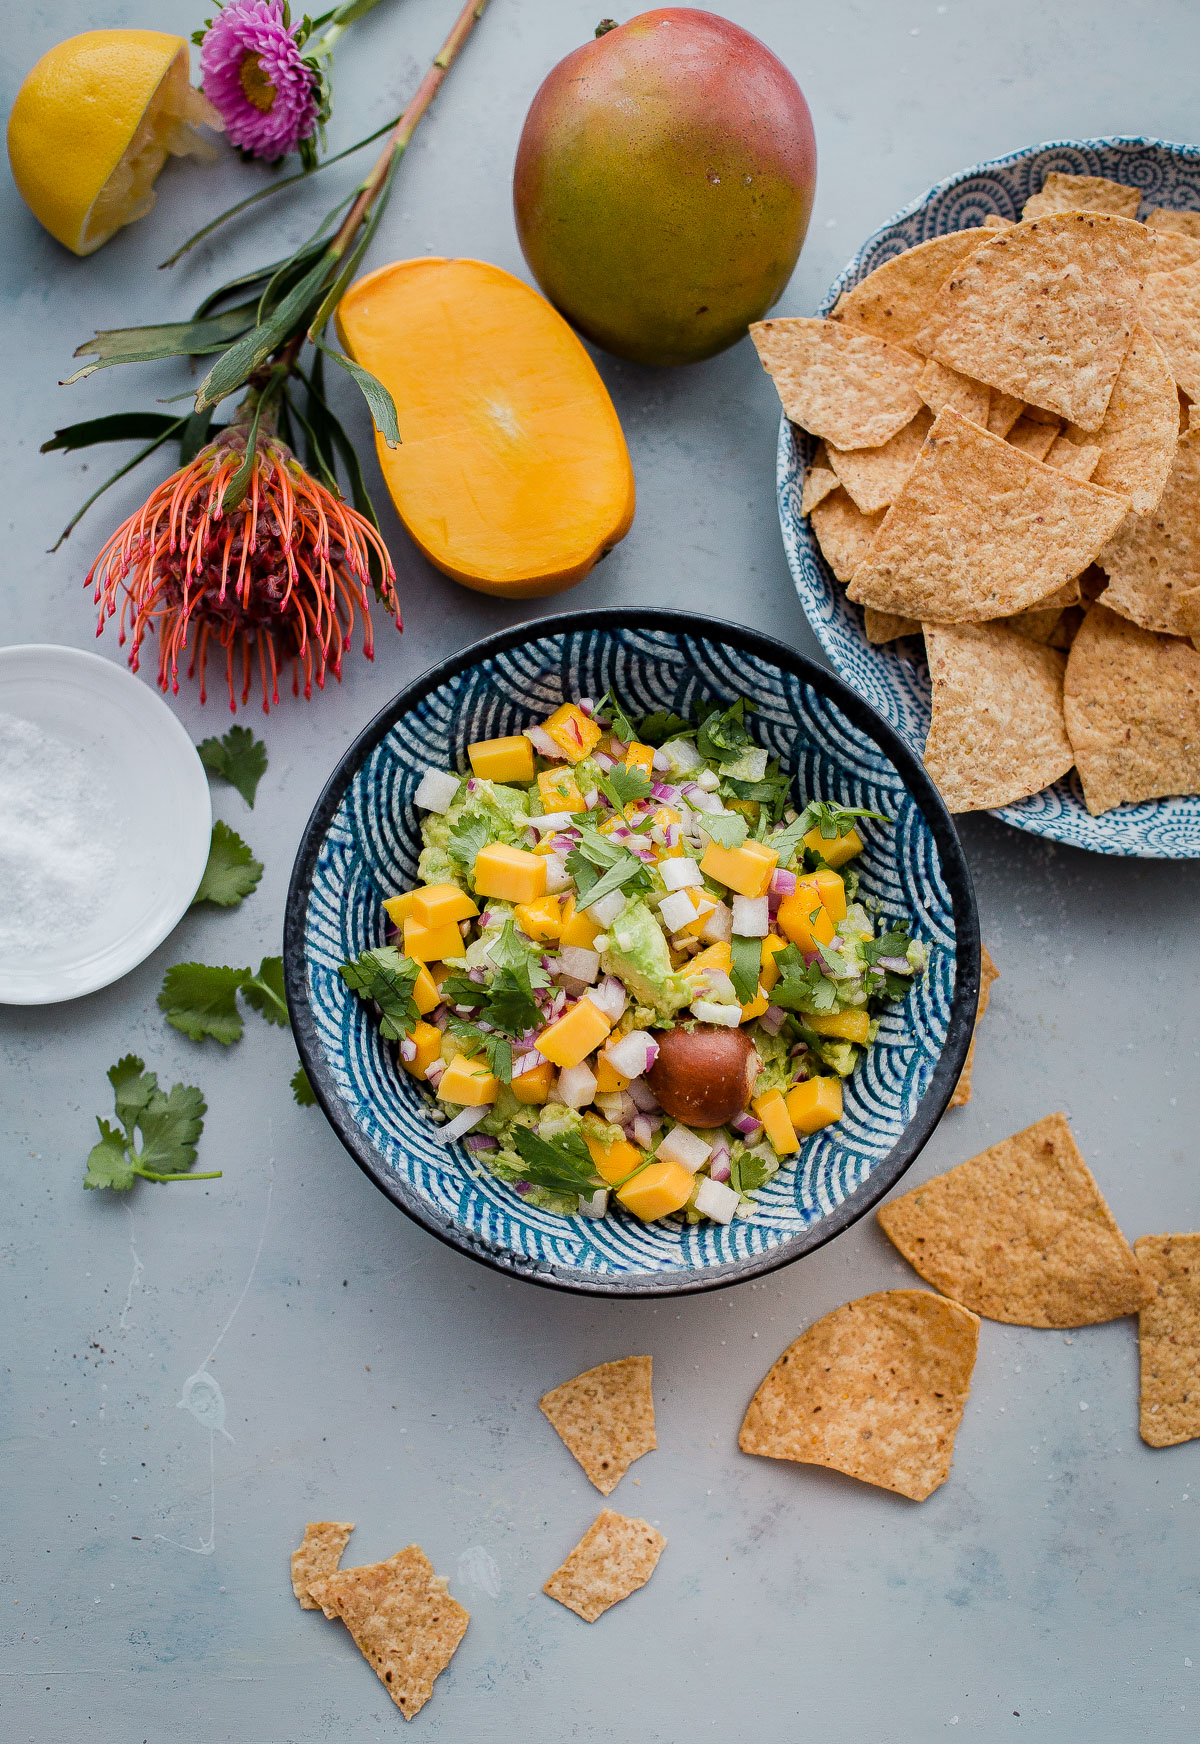 Tropical Mango Guacamole. Traditional guacamole is given a tropical twist with juicy mango and jicama! Perfect appetizer for Cinco de Mayo.